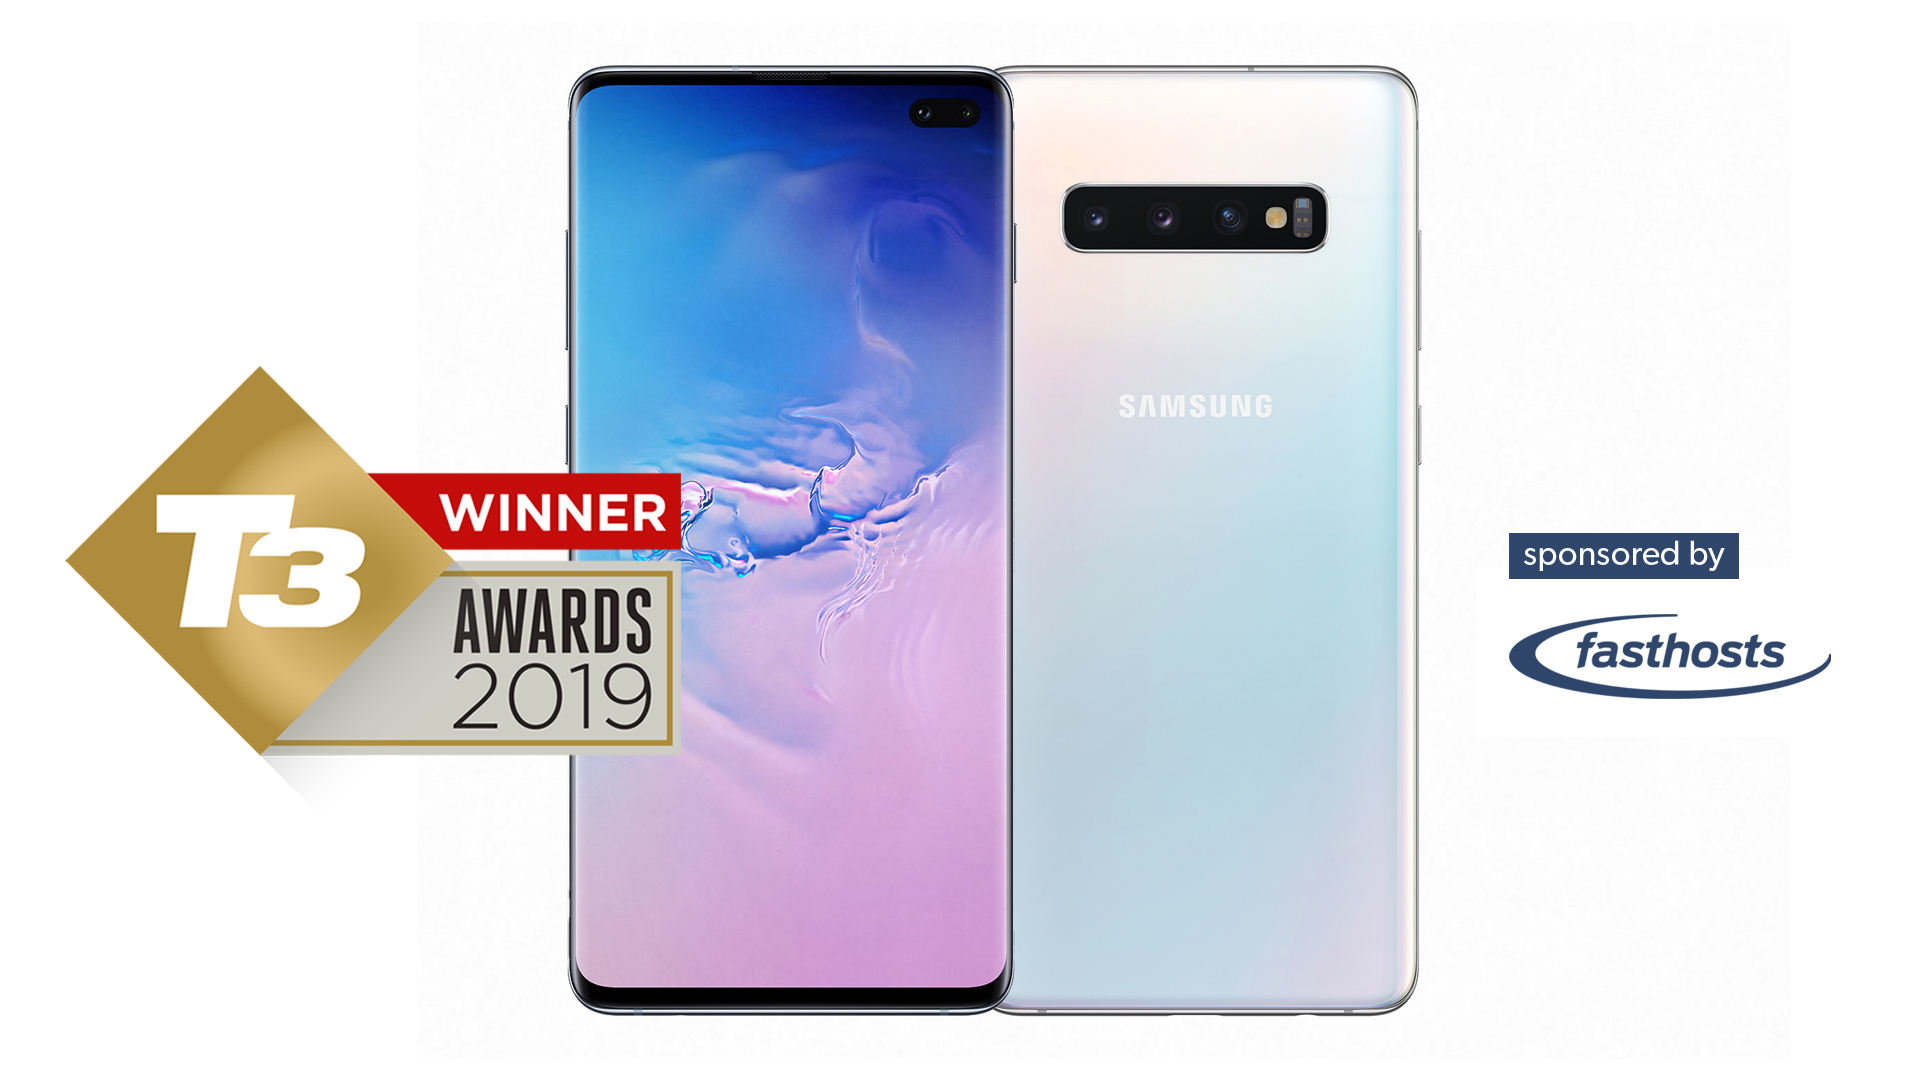 Apple Iphone Xs Max Dethroned As Samsung Galaxy S10 Plus